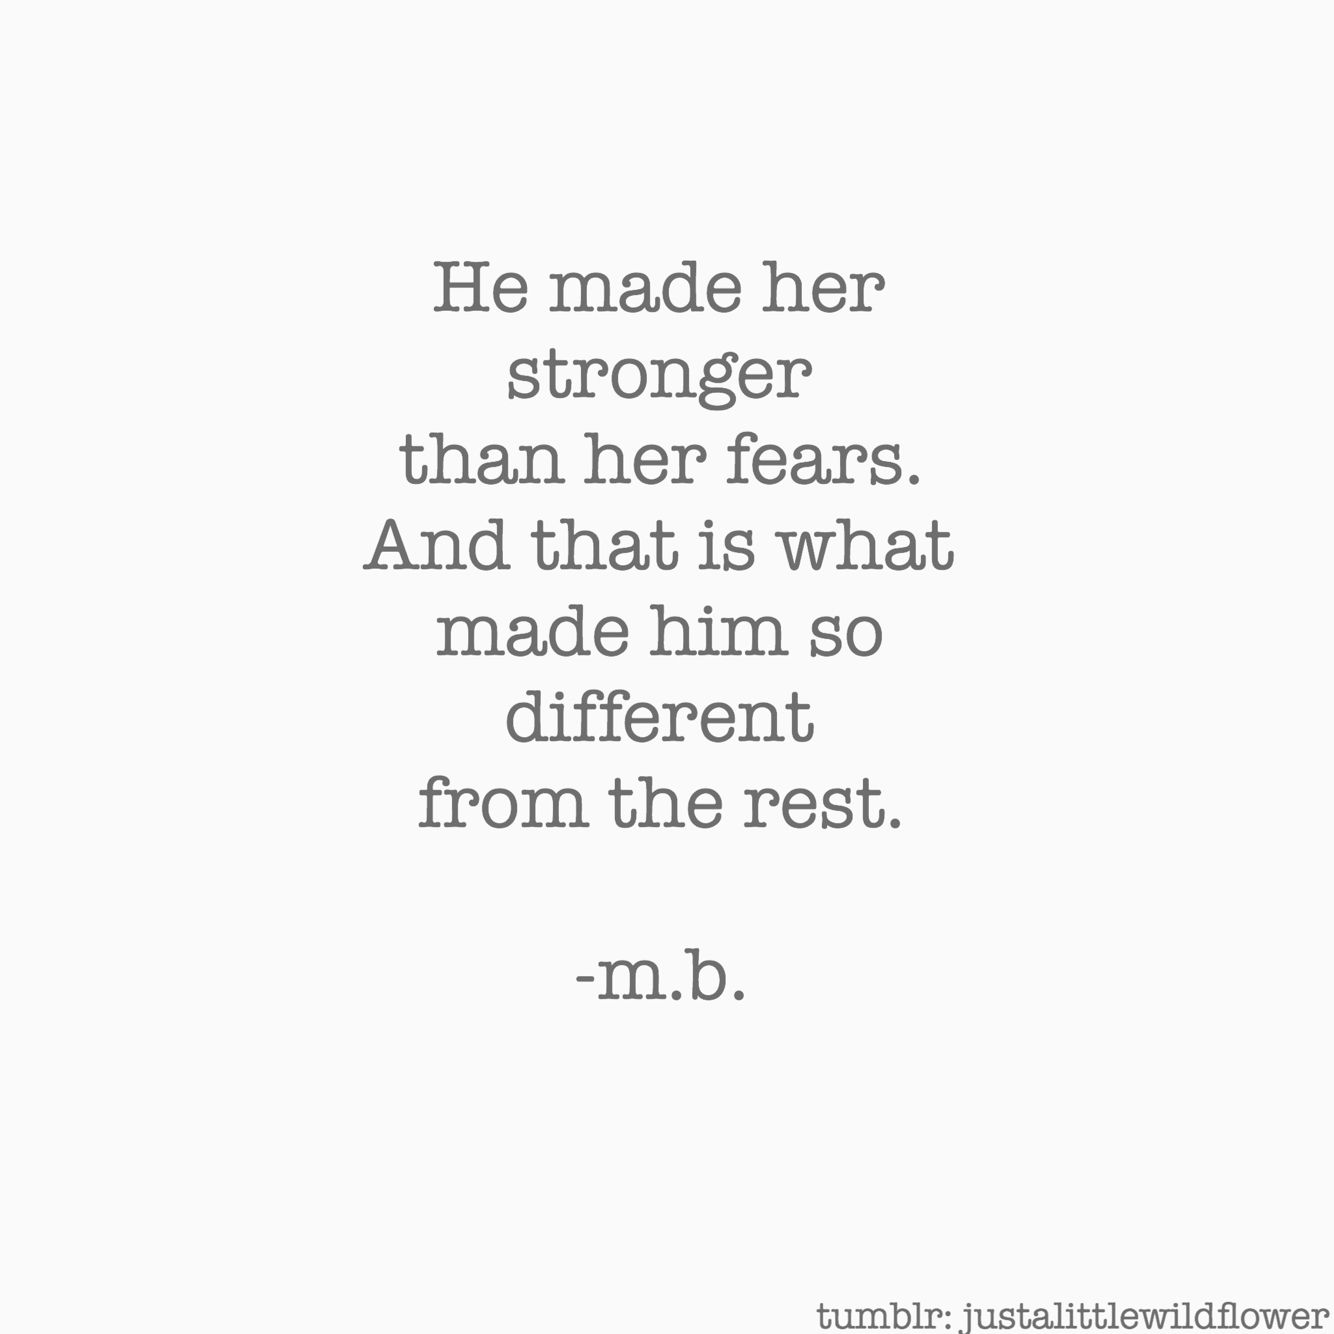 I Messed Up Quotes Tumblr: He Made Her Stronger Than Her Fears ️ #tumblr #stronger